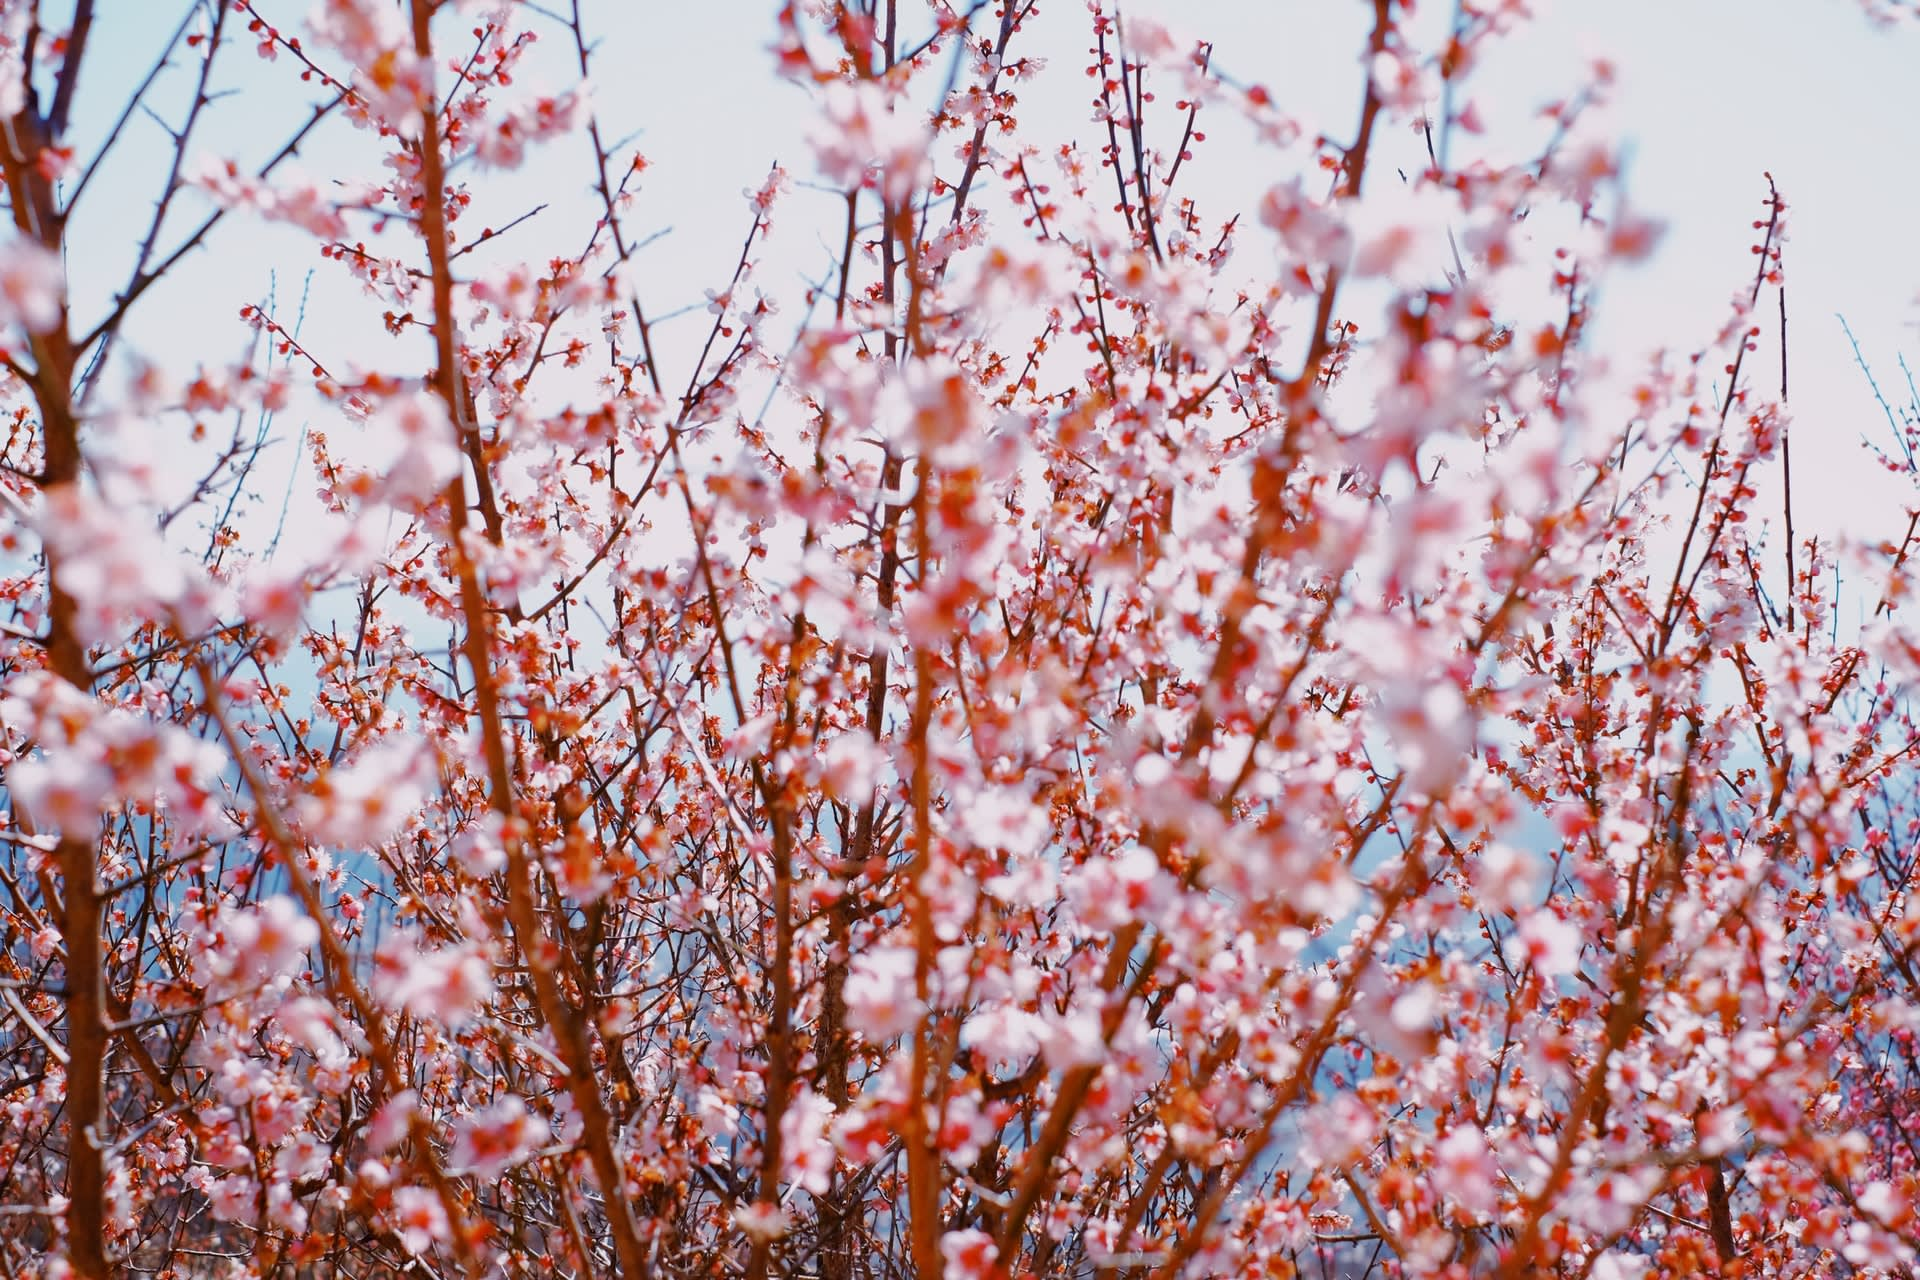 Tokyo - Early Spring Special - Plum Blossom Viewing